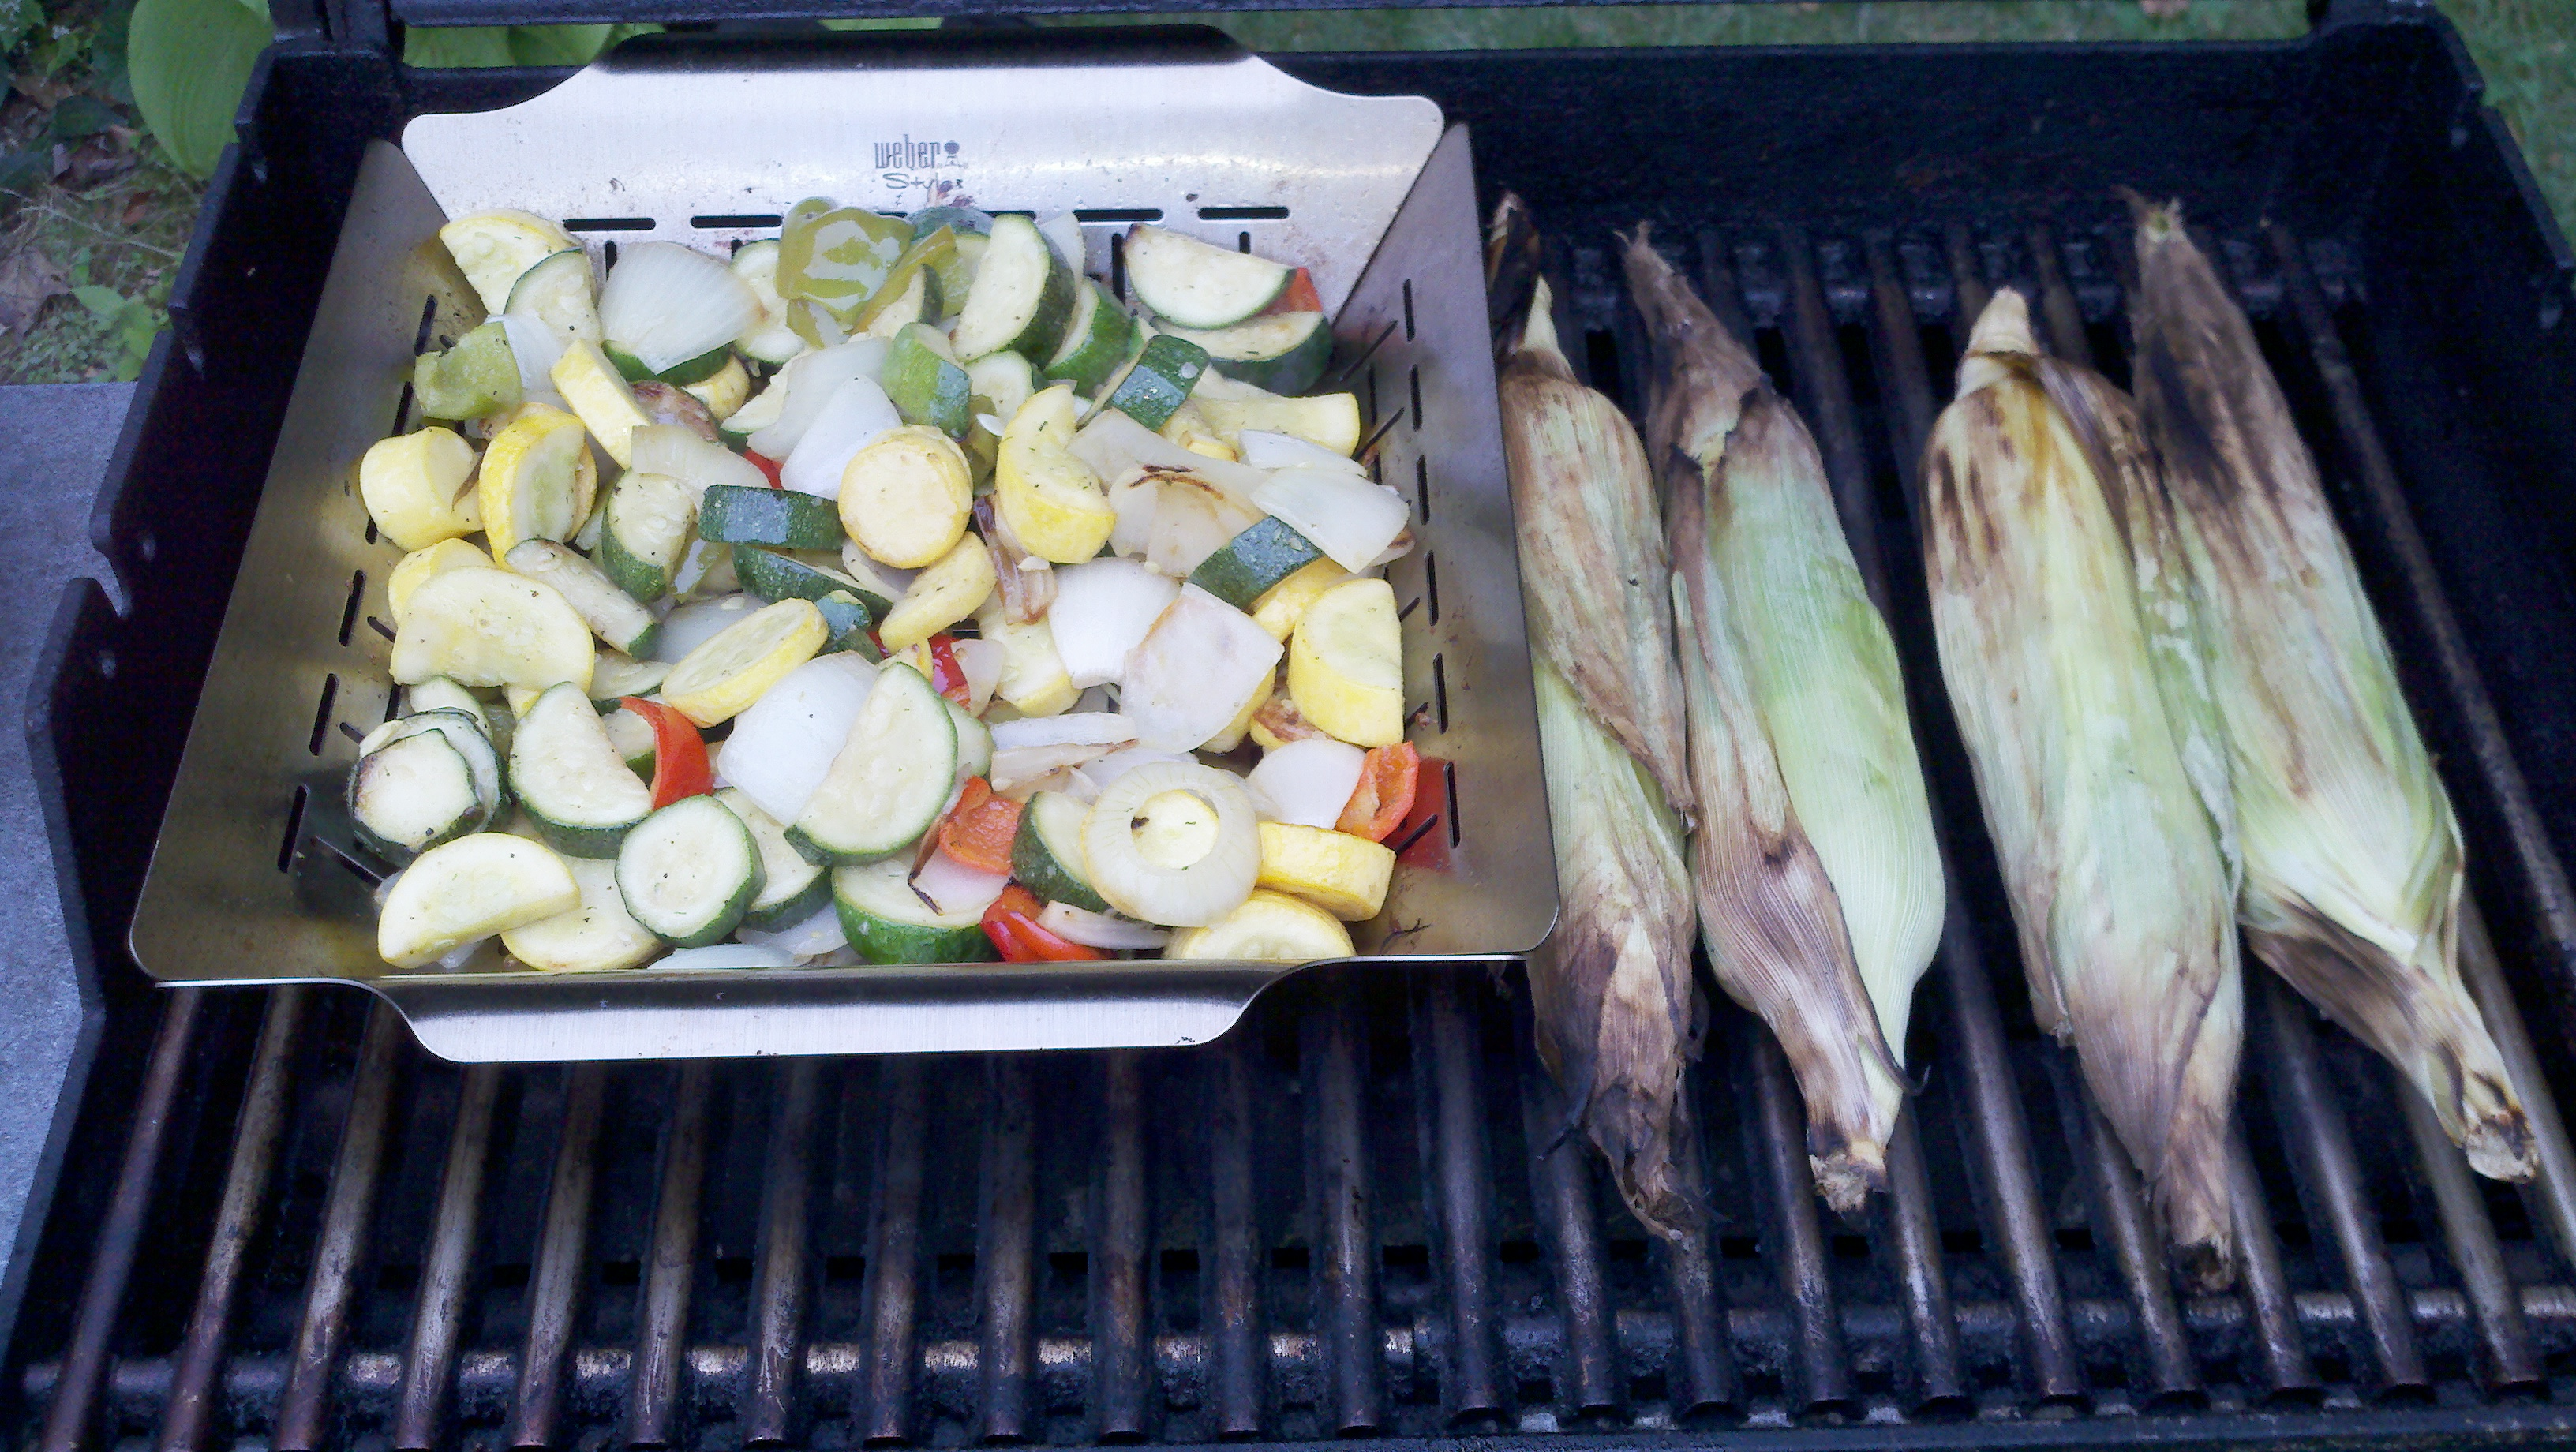 Milford NH :: grilled veggies: green and yellow squash, red and green peppers, white onions; yellow and white sweet corn; chicken and sausage after veggies were done; all tasted great.